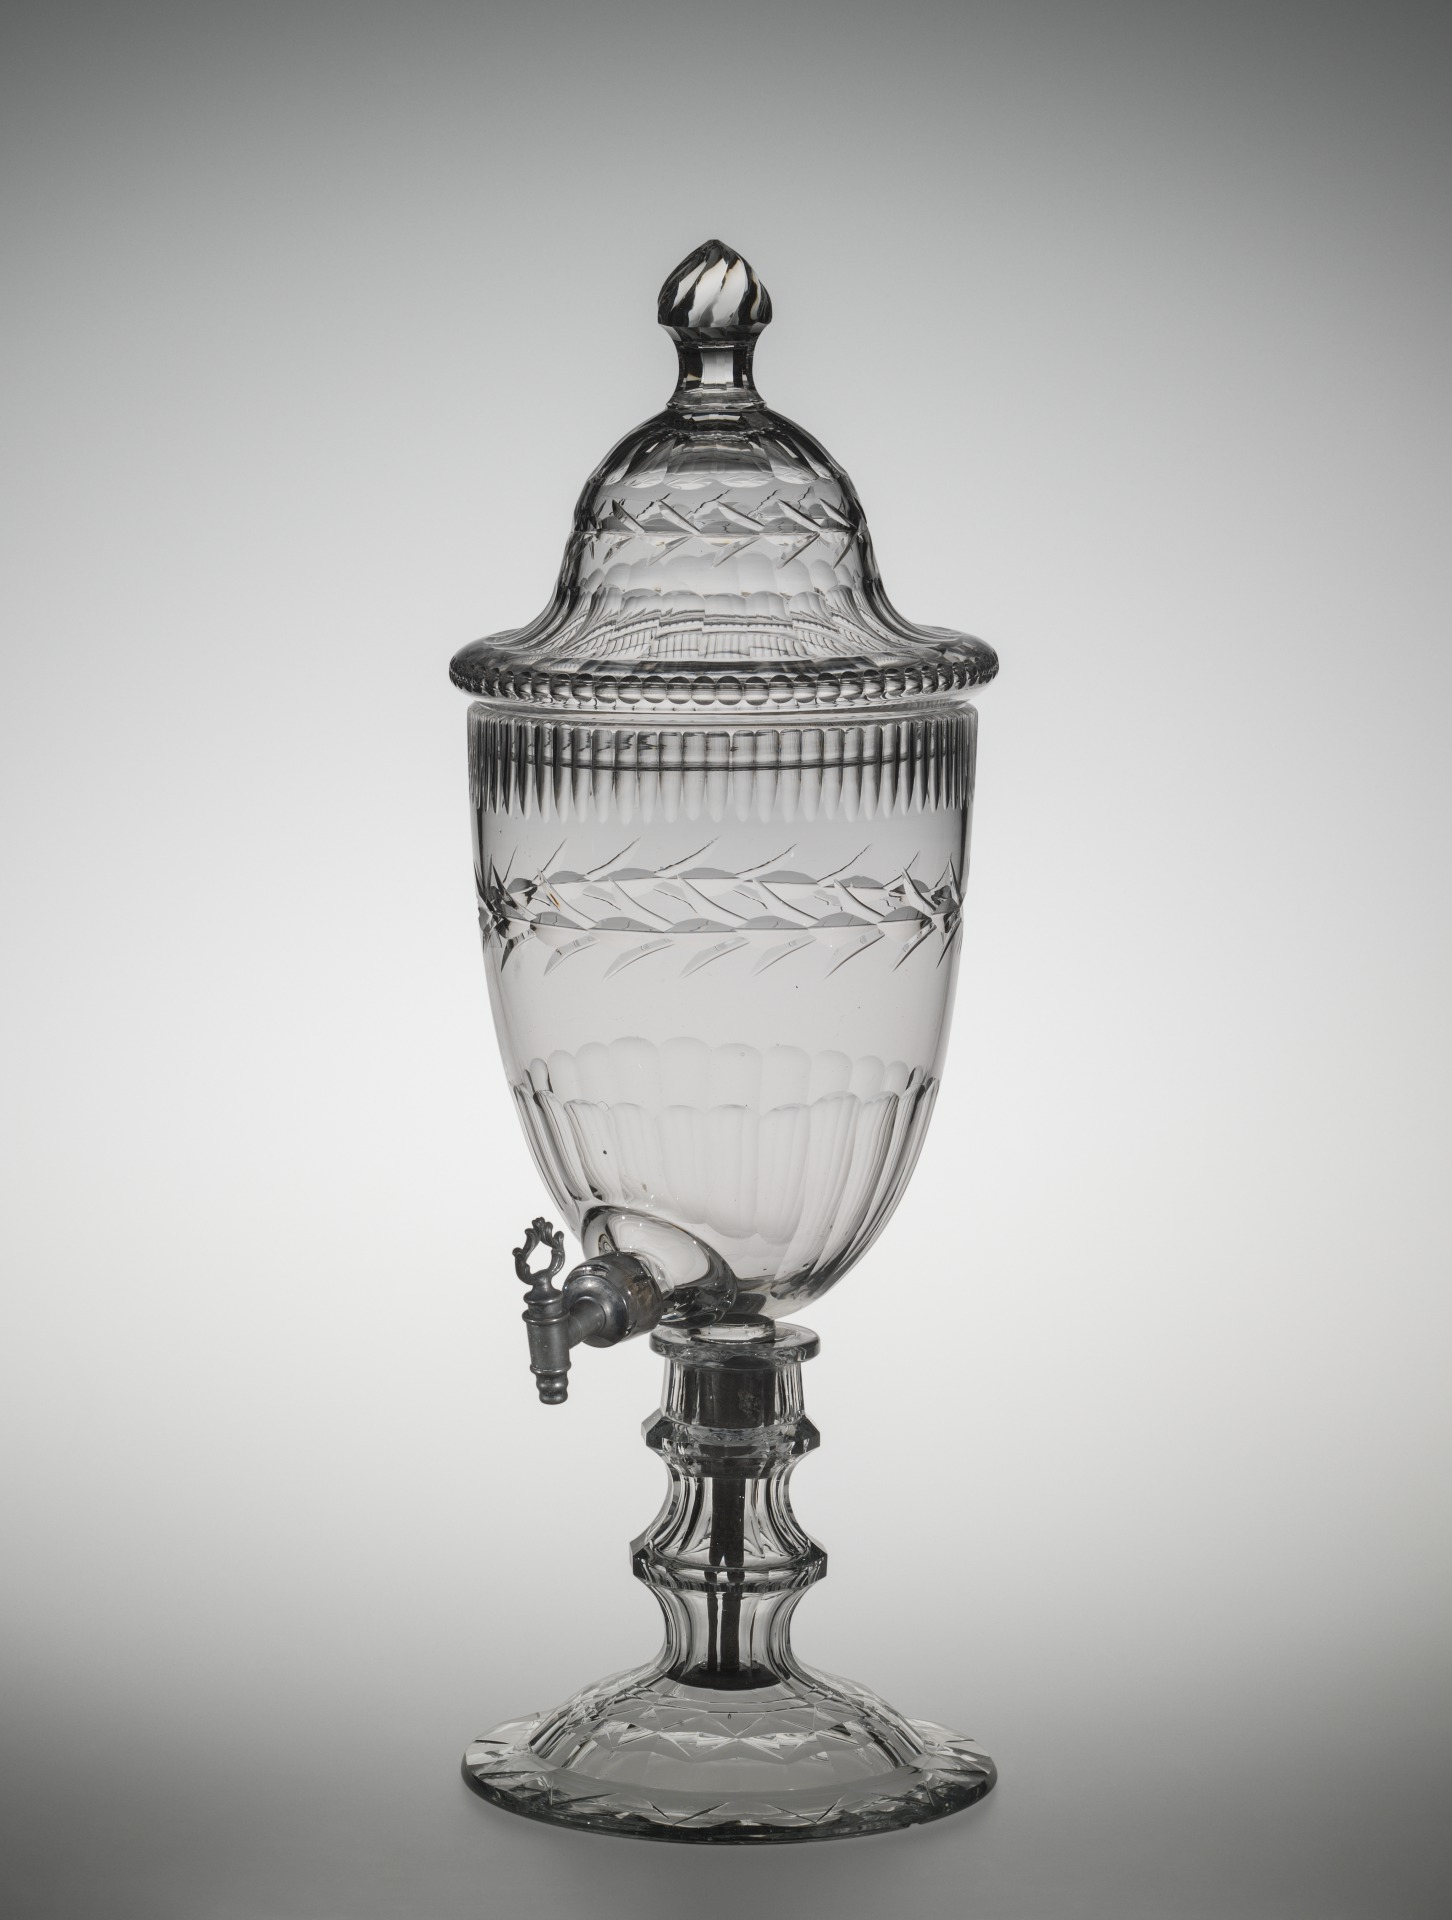 Dark colorless lead glass; blown and cut. (a) Deep ovate bowl having on one side, at bottom, a cylindrical nozzle fitted with pewter spigot set in cork, and at bottom a metal mounting and rod passing through knopped stem of standard with domed circular foot; decoration: circlet of trifoliate leaves on plain field between bands of broad paneling at bottom and finger-flutes at top. (b) High domed set-in cover with stemmed- cone finial; decoration: same leaf circlet between bands of broad panels. (c) Standard -- hexagonal paneled stem, flat cutting on foot.